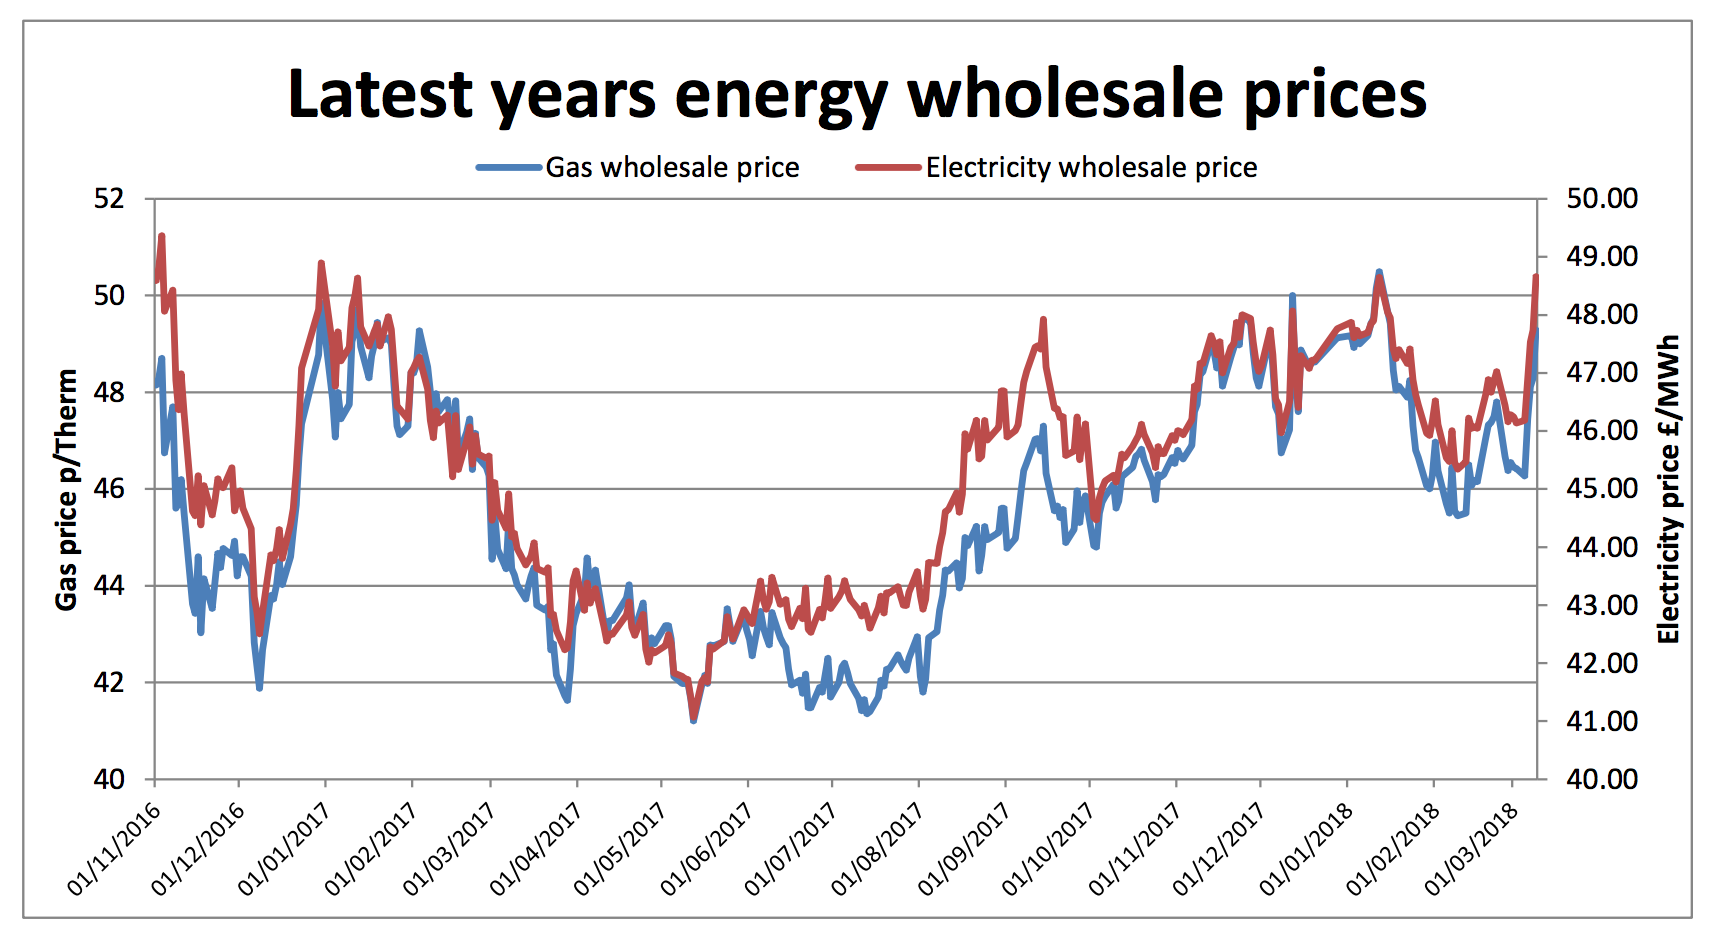 annual wholesale gas and electricity prices